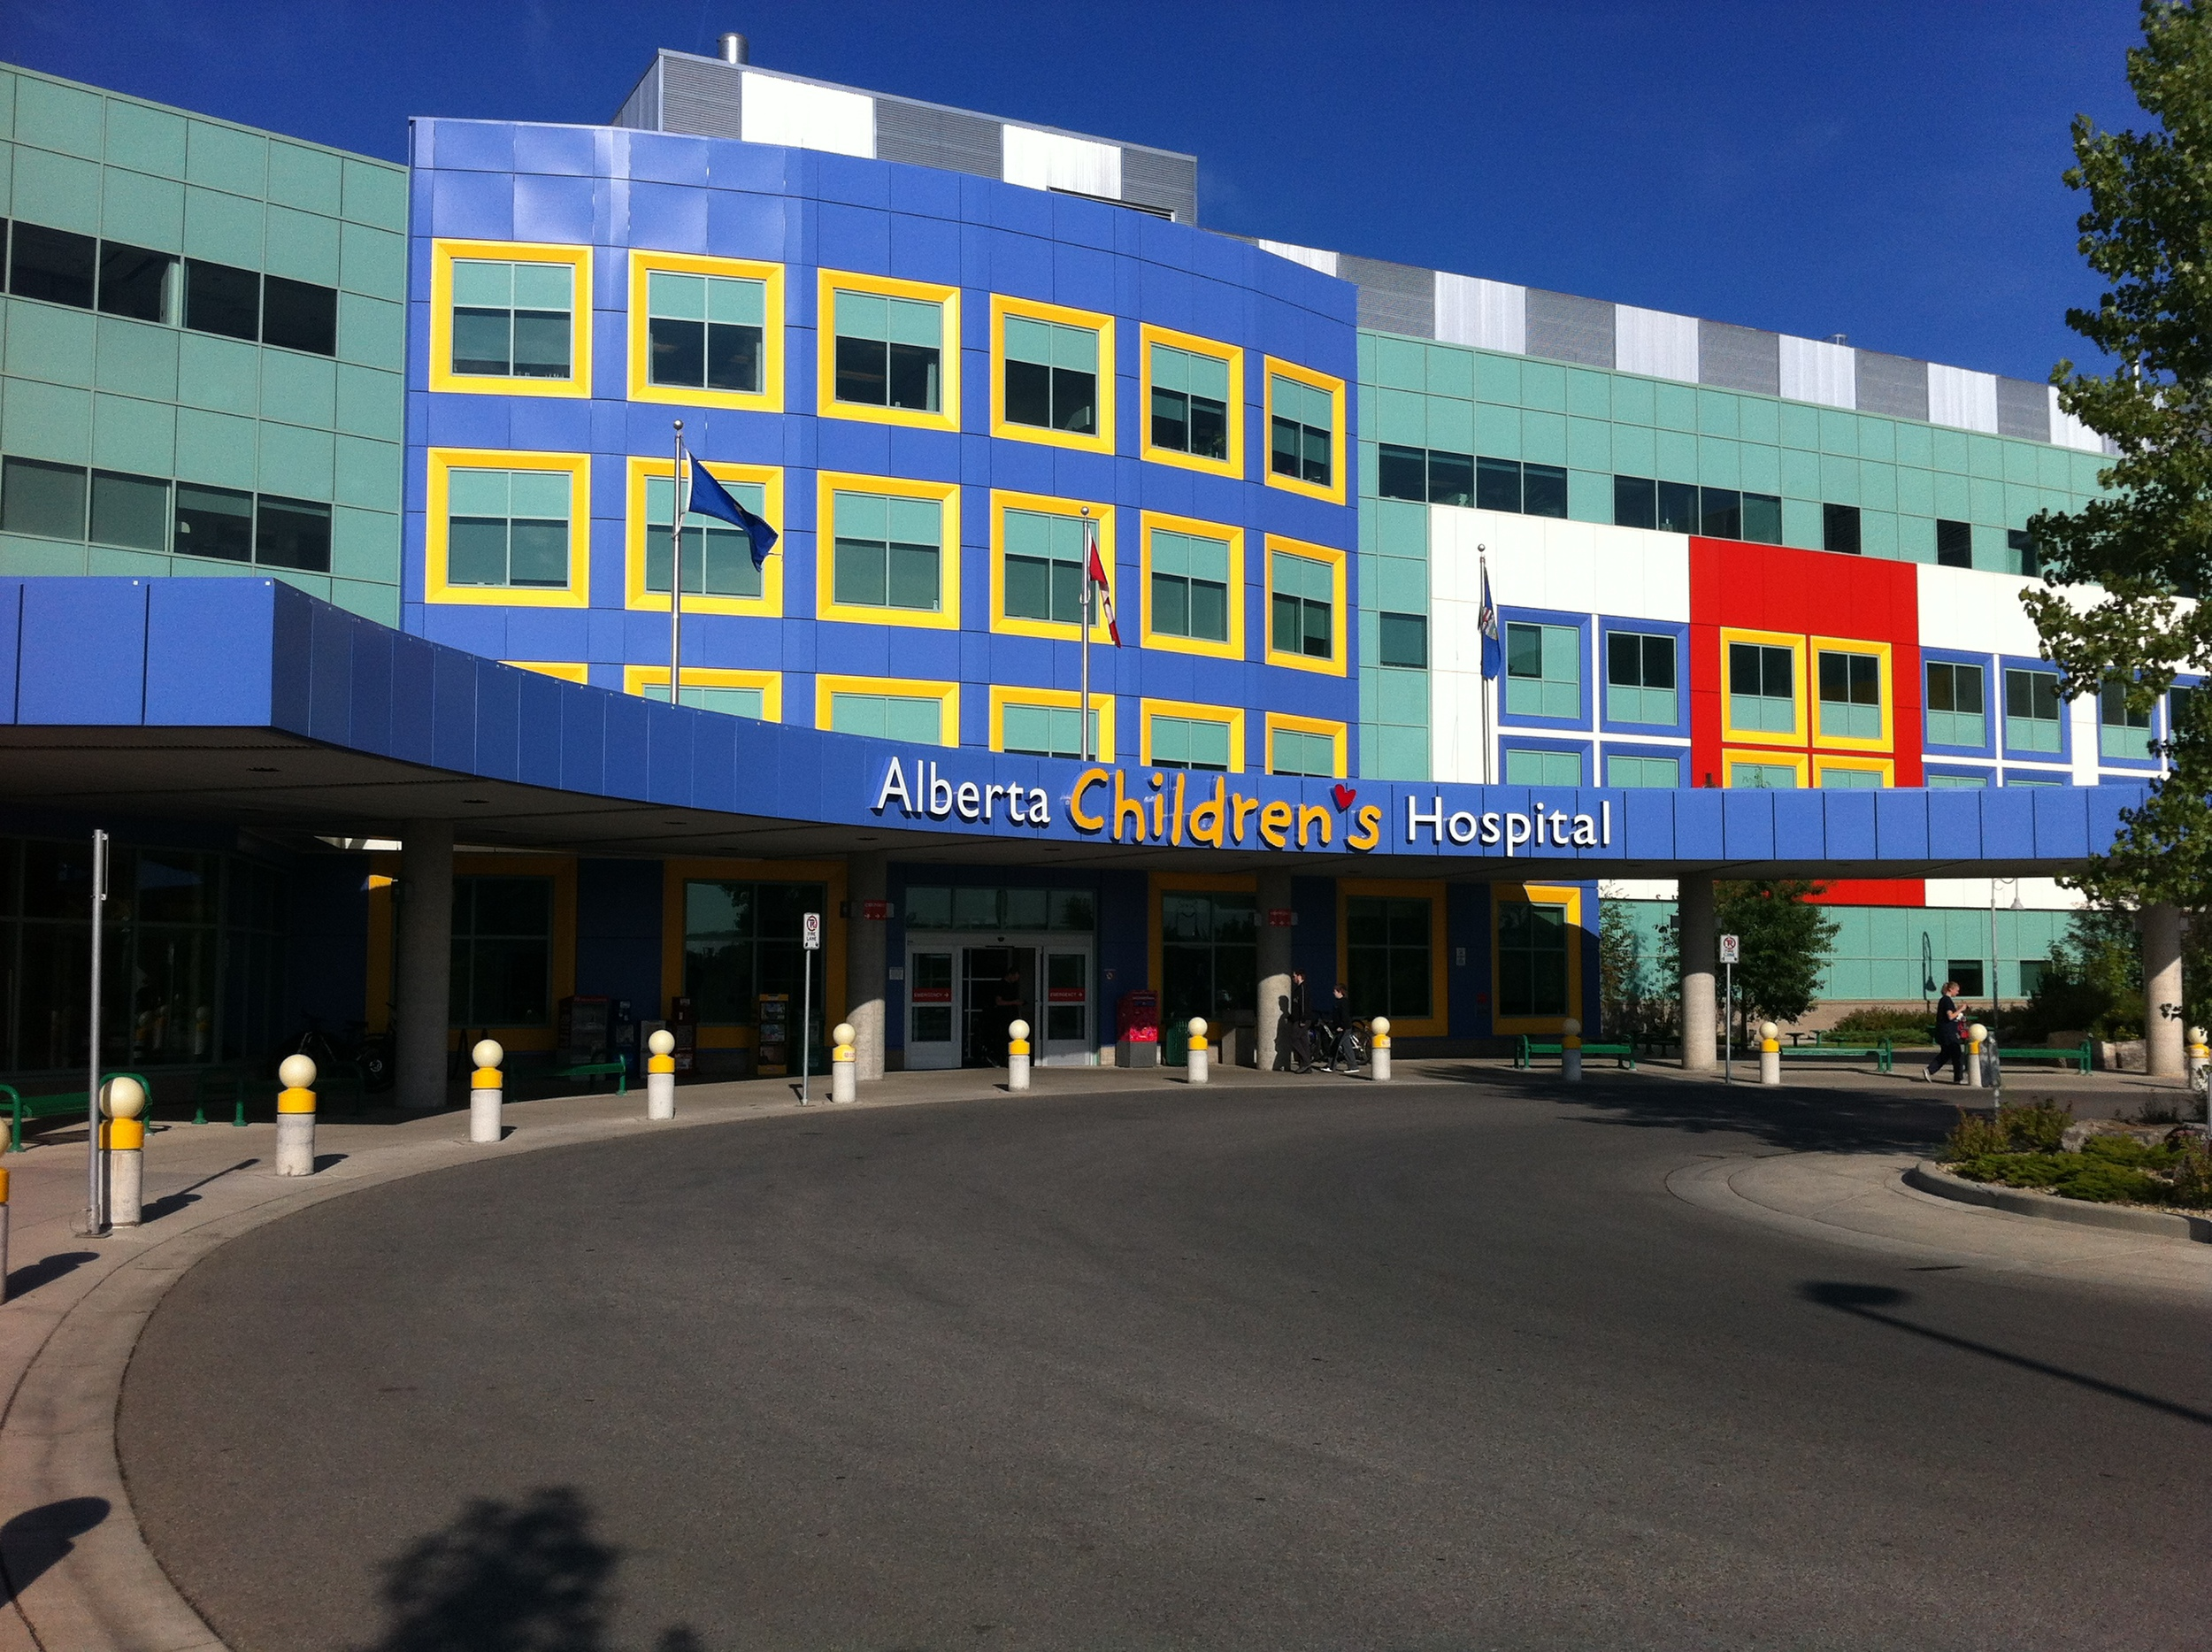 It is not coincidence that theAlberta Children's Hospital looks like it was constructed with lego. A youth advisory group provide the design team with ideas about what the hospital should look like - big windows and bright colours were two of the suggestions. The building is both fun and welcoming, something every building should be.